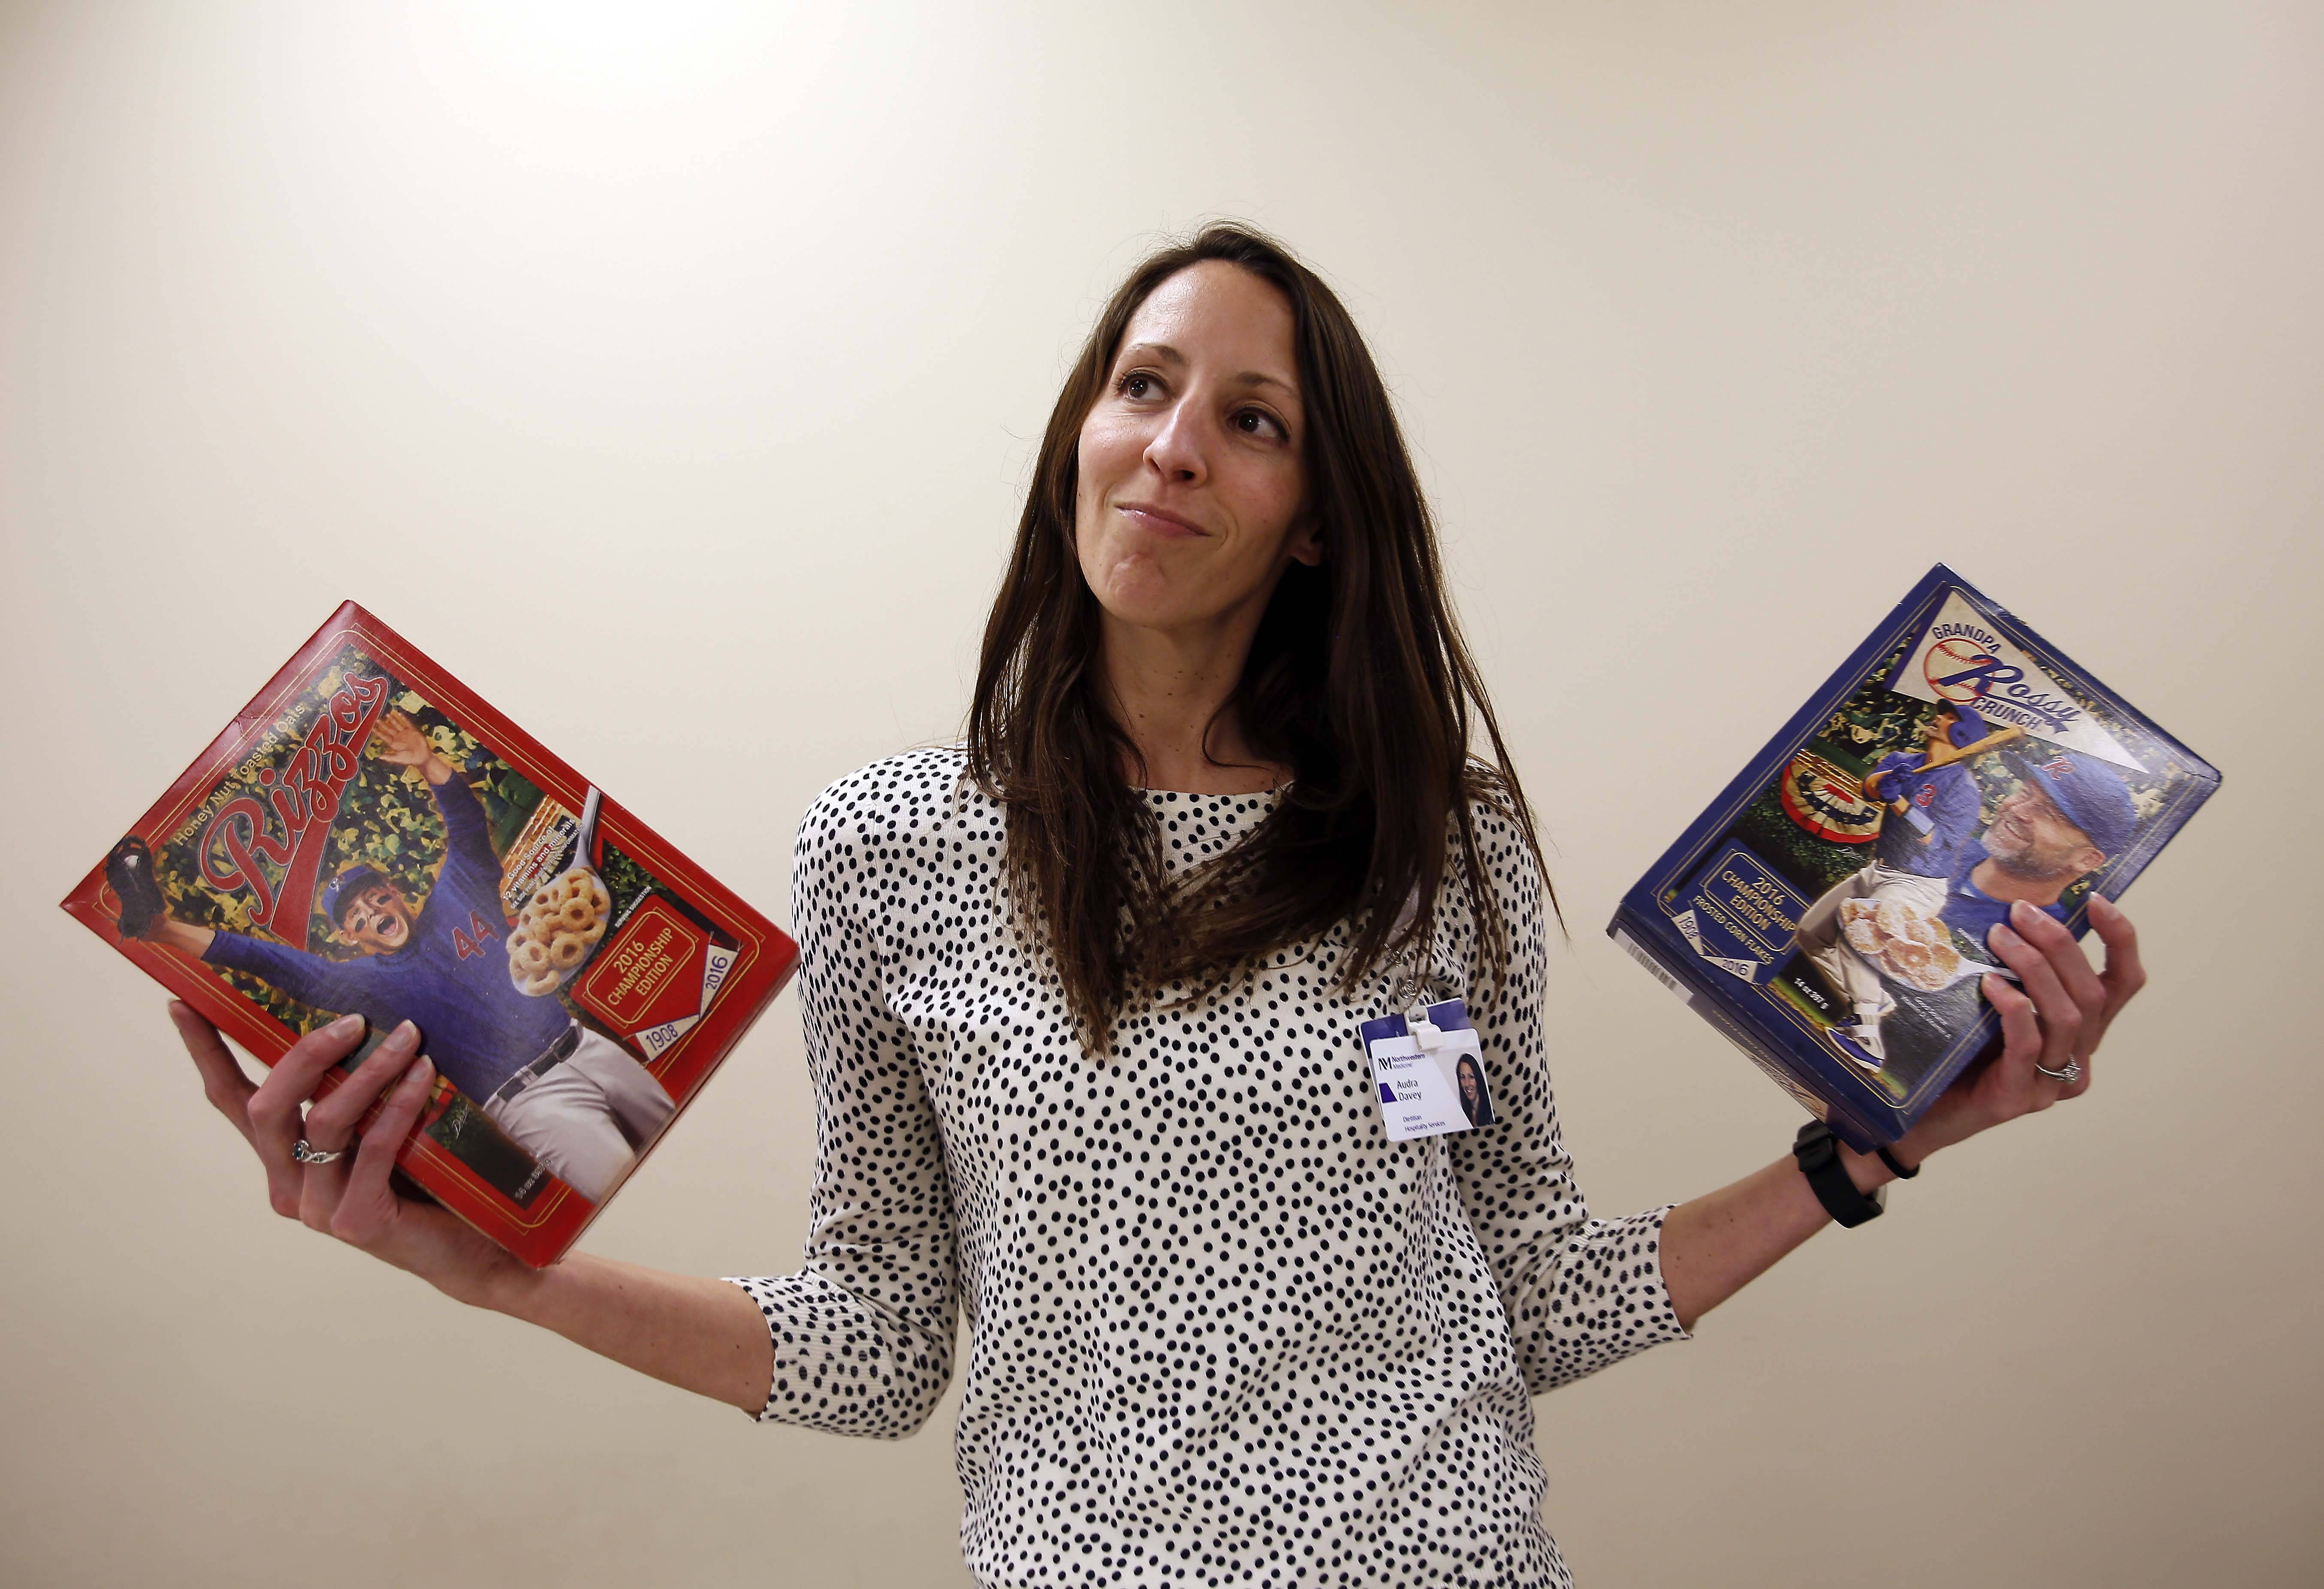 Retired Cub David Ross takes on current Cub Anthony Rizzo in this cereal battle. Registered dietitian Audra Davey, a nutritionist with The Northwestern Medicine Weight Management Program at Delnor Hospital in Geneva, breaks it down for us.